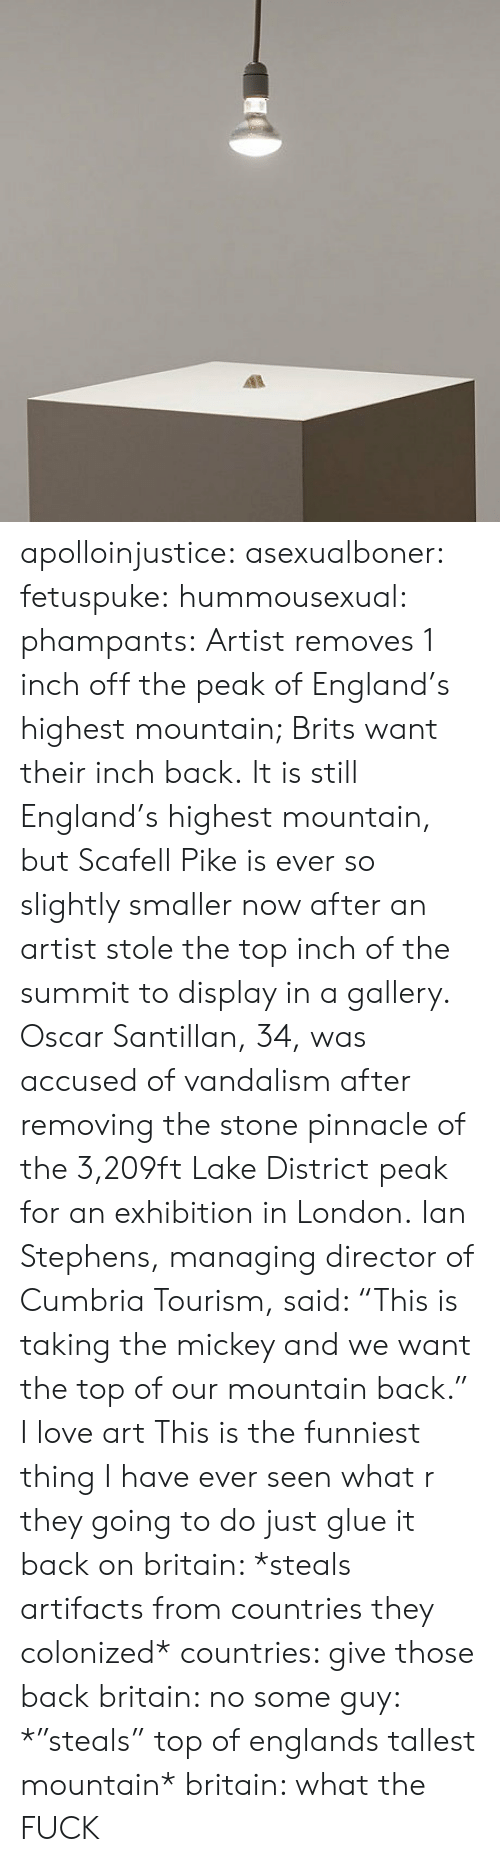 "England, Love, and Tumblr: apolloinjustice:  asexualboner:  fetuspuke:   hummousexual:   phampants:   Artist removes 1 inch off the peak of England's highest mountain; Brits want their inch back. It is still England's highest mountain, but Scafell Pike is ever so slightly smaller now after an artist stole the top inch of the summit to display in a gallery. Oscar Santillan, 34, was accused of vandalism after removing the stone pinnacle of the 3,209ft Lake District peak for an exhibition in London. Ian Stephens, managing director of Cumbria Tourism, said: ""This is taking the mickey and we want the top of our mountain back.""   I love art   This is the funniest thing I have ever seen   what r they going to do just glue it back on   britain: *steals artifacts from countries they colonized* countries: give those back britain: no some guy: *""steals"" top of englands tallest mountain* britain: what the FUCK"